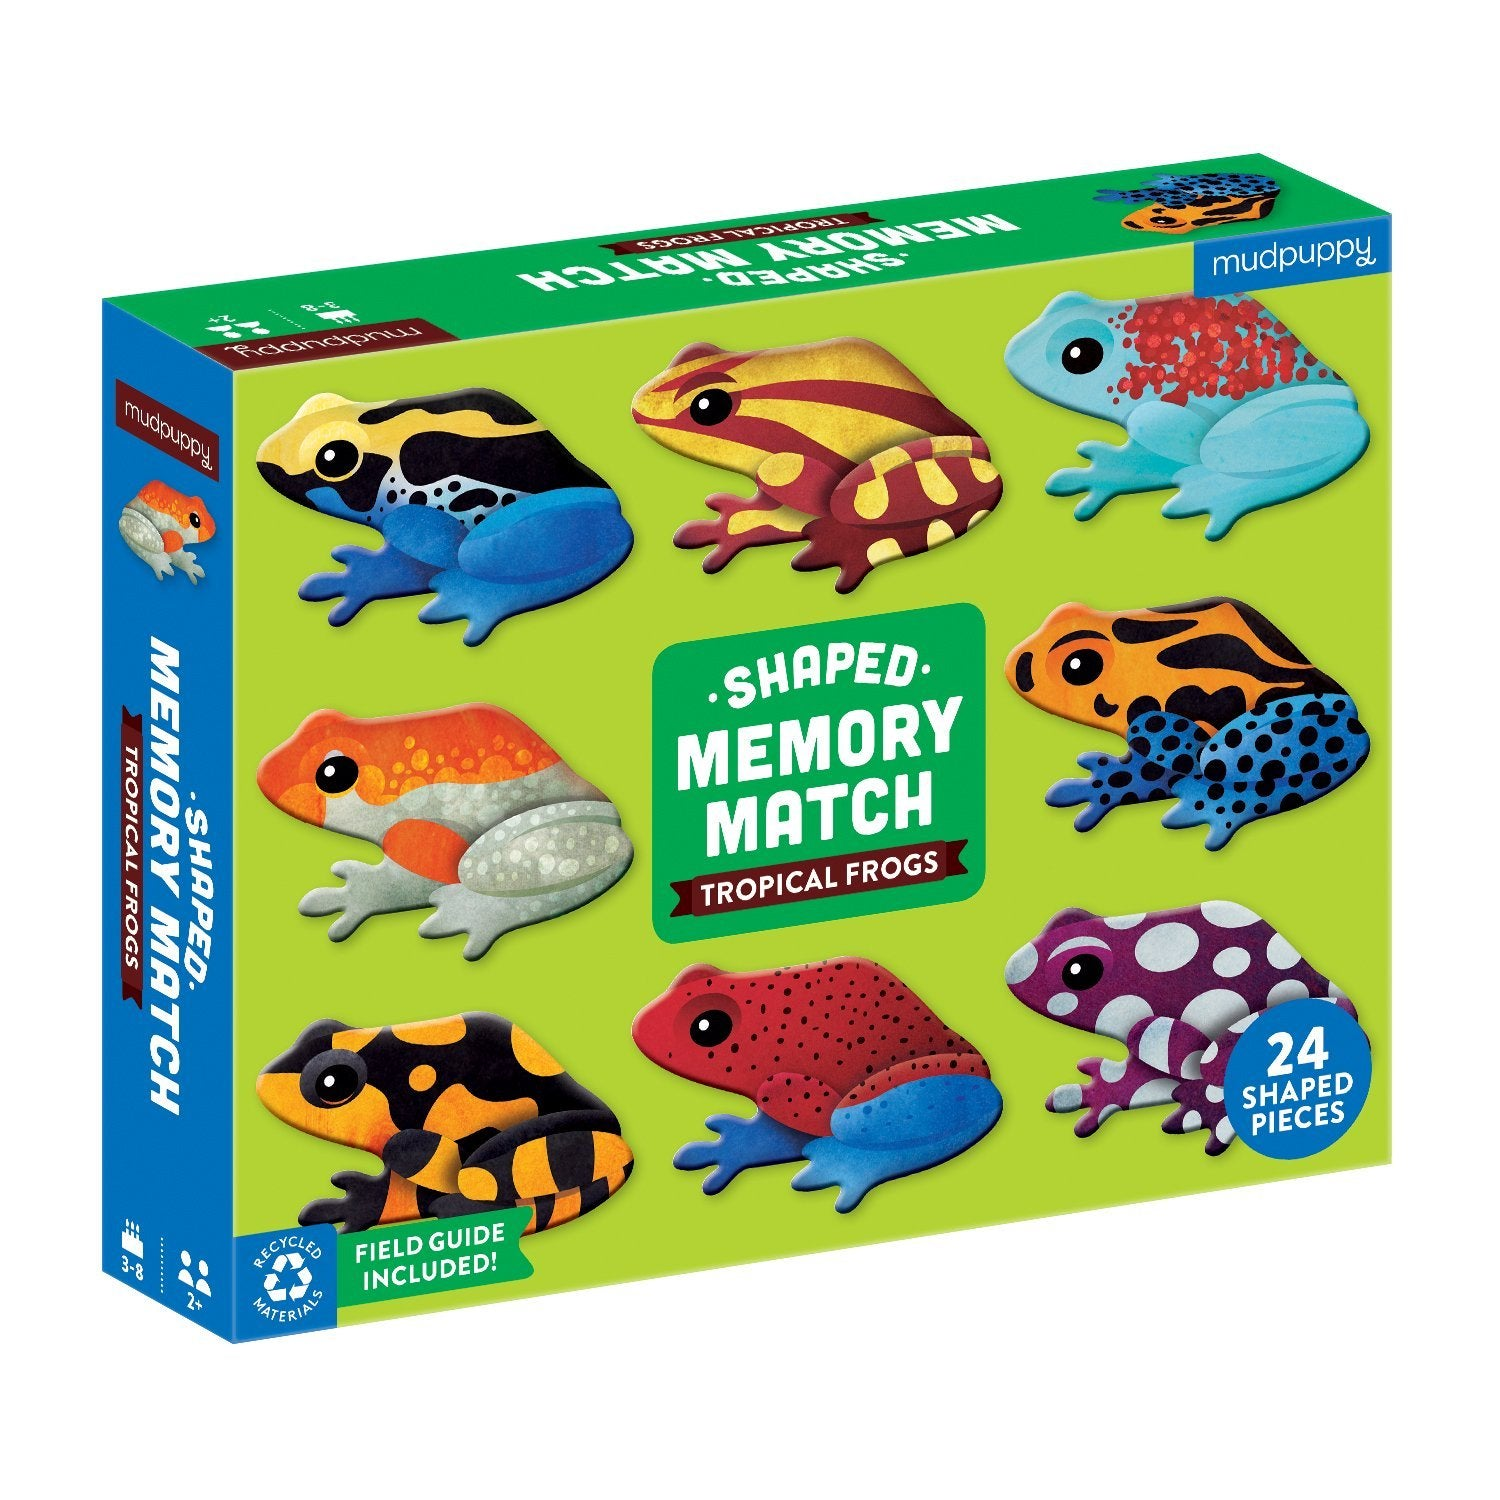 Mudpuppy - Memory Match Tropical Frogs - The Little Interior